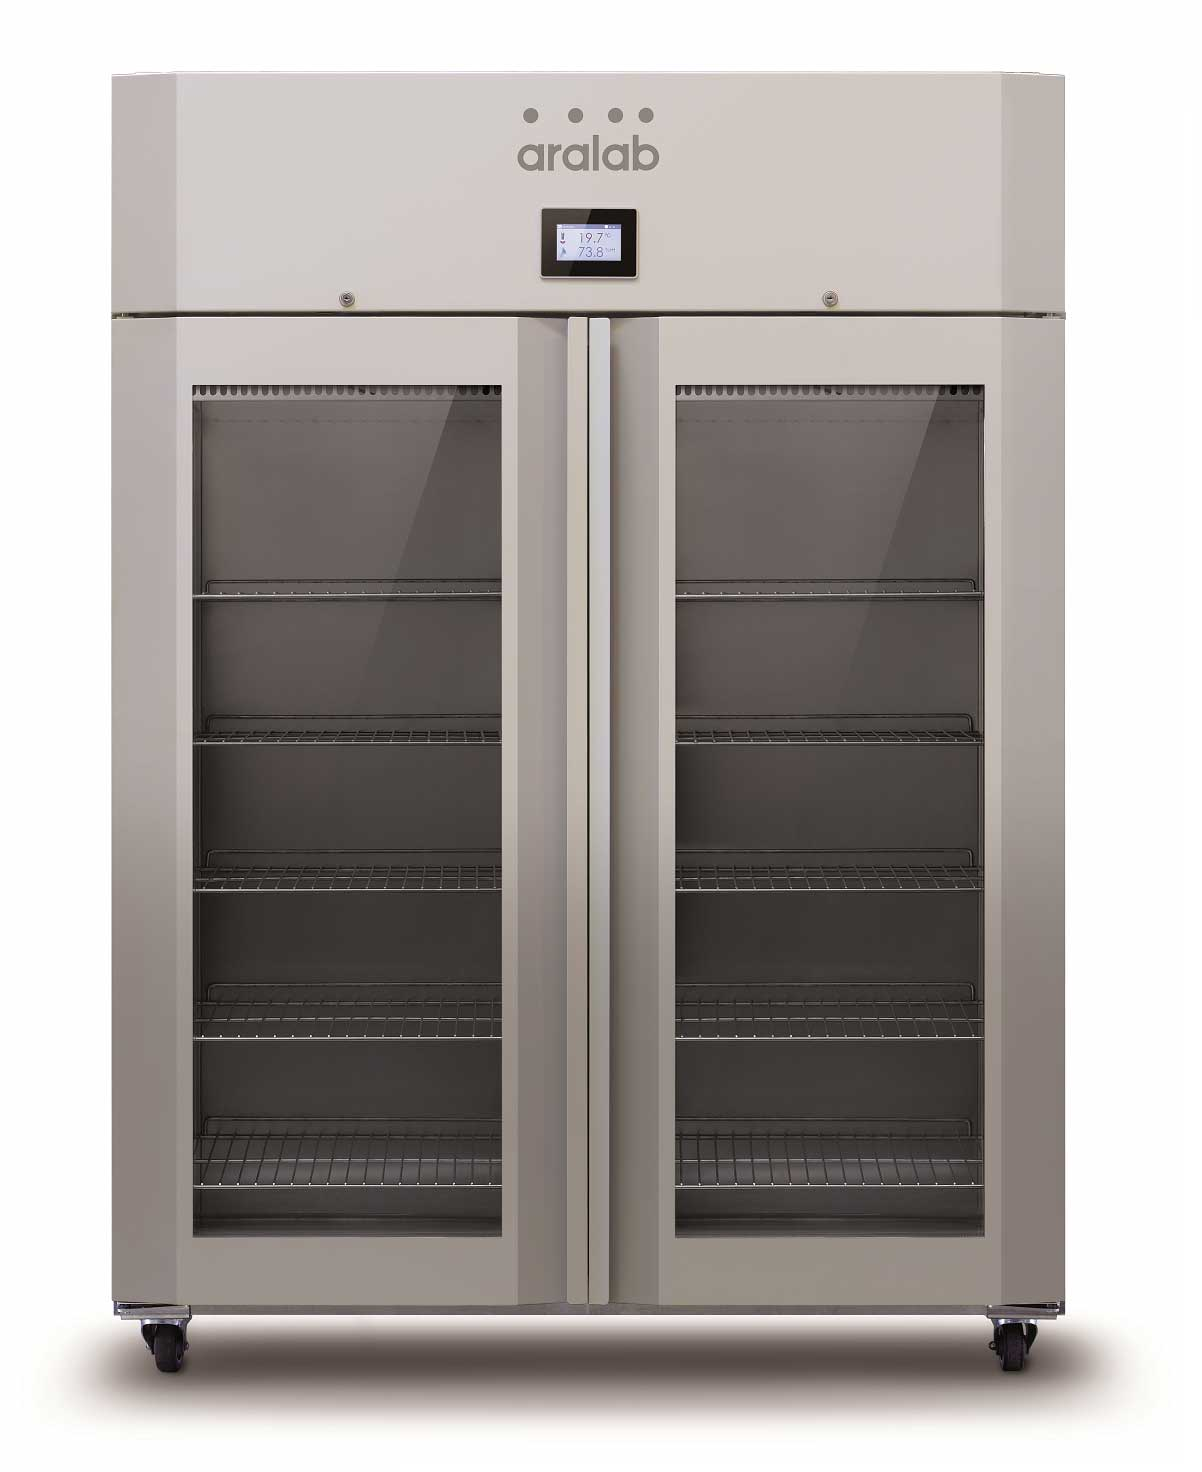 Stabilitaetspruefschrank aralab fitoclima 1200 double for 1200 door